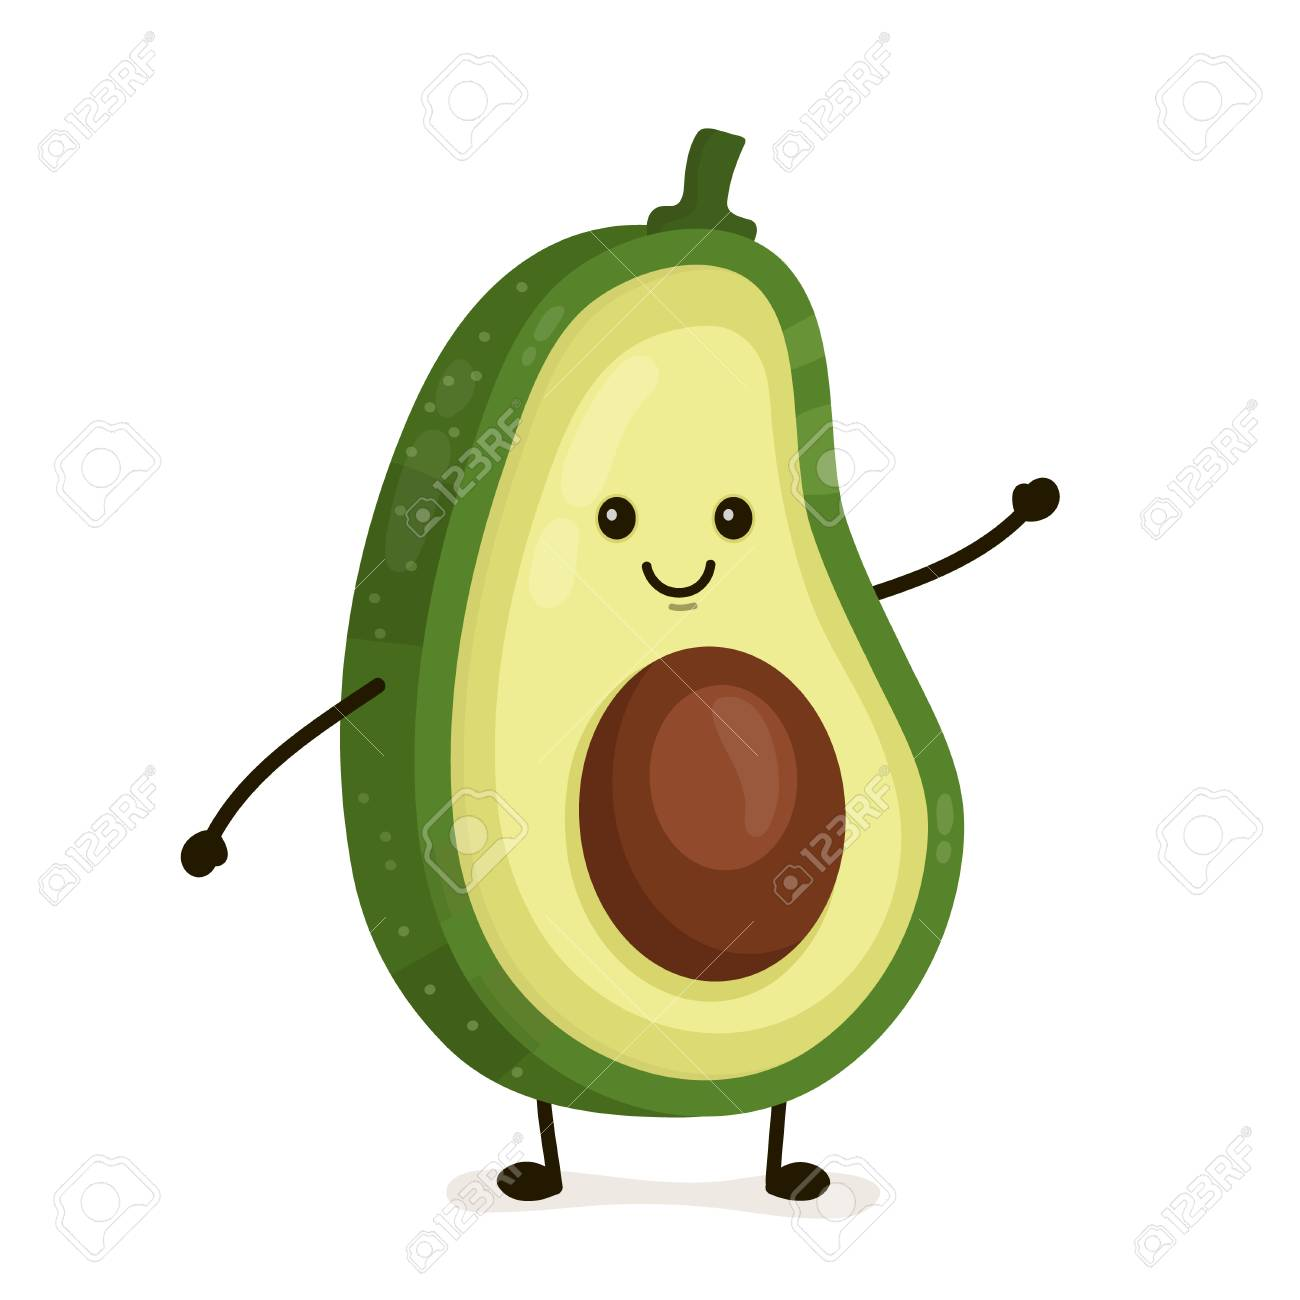 Funny happy cute happy smiling avocado. Vector flat cartoon character illustration icon. Isolated on white background. Fruit avocado concept - 98519348